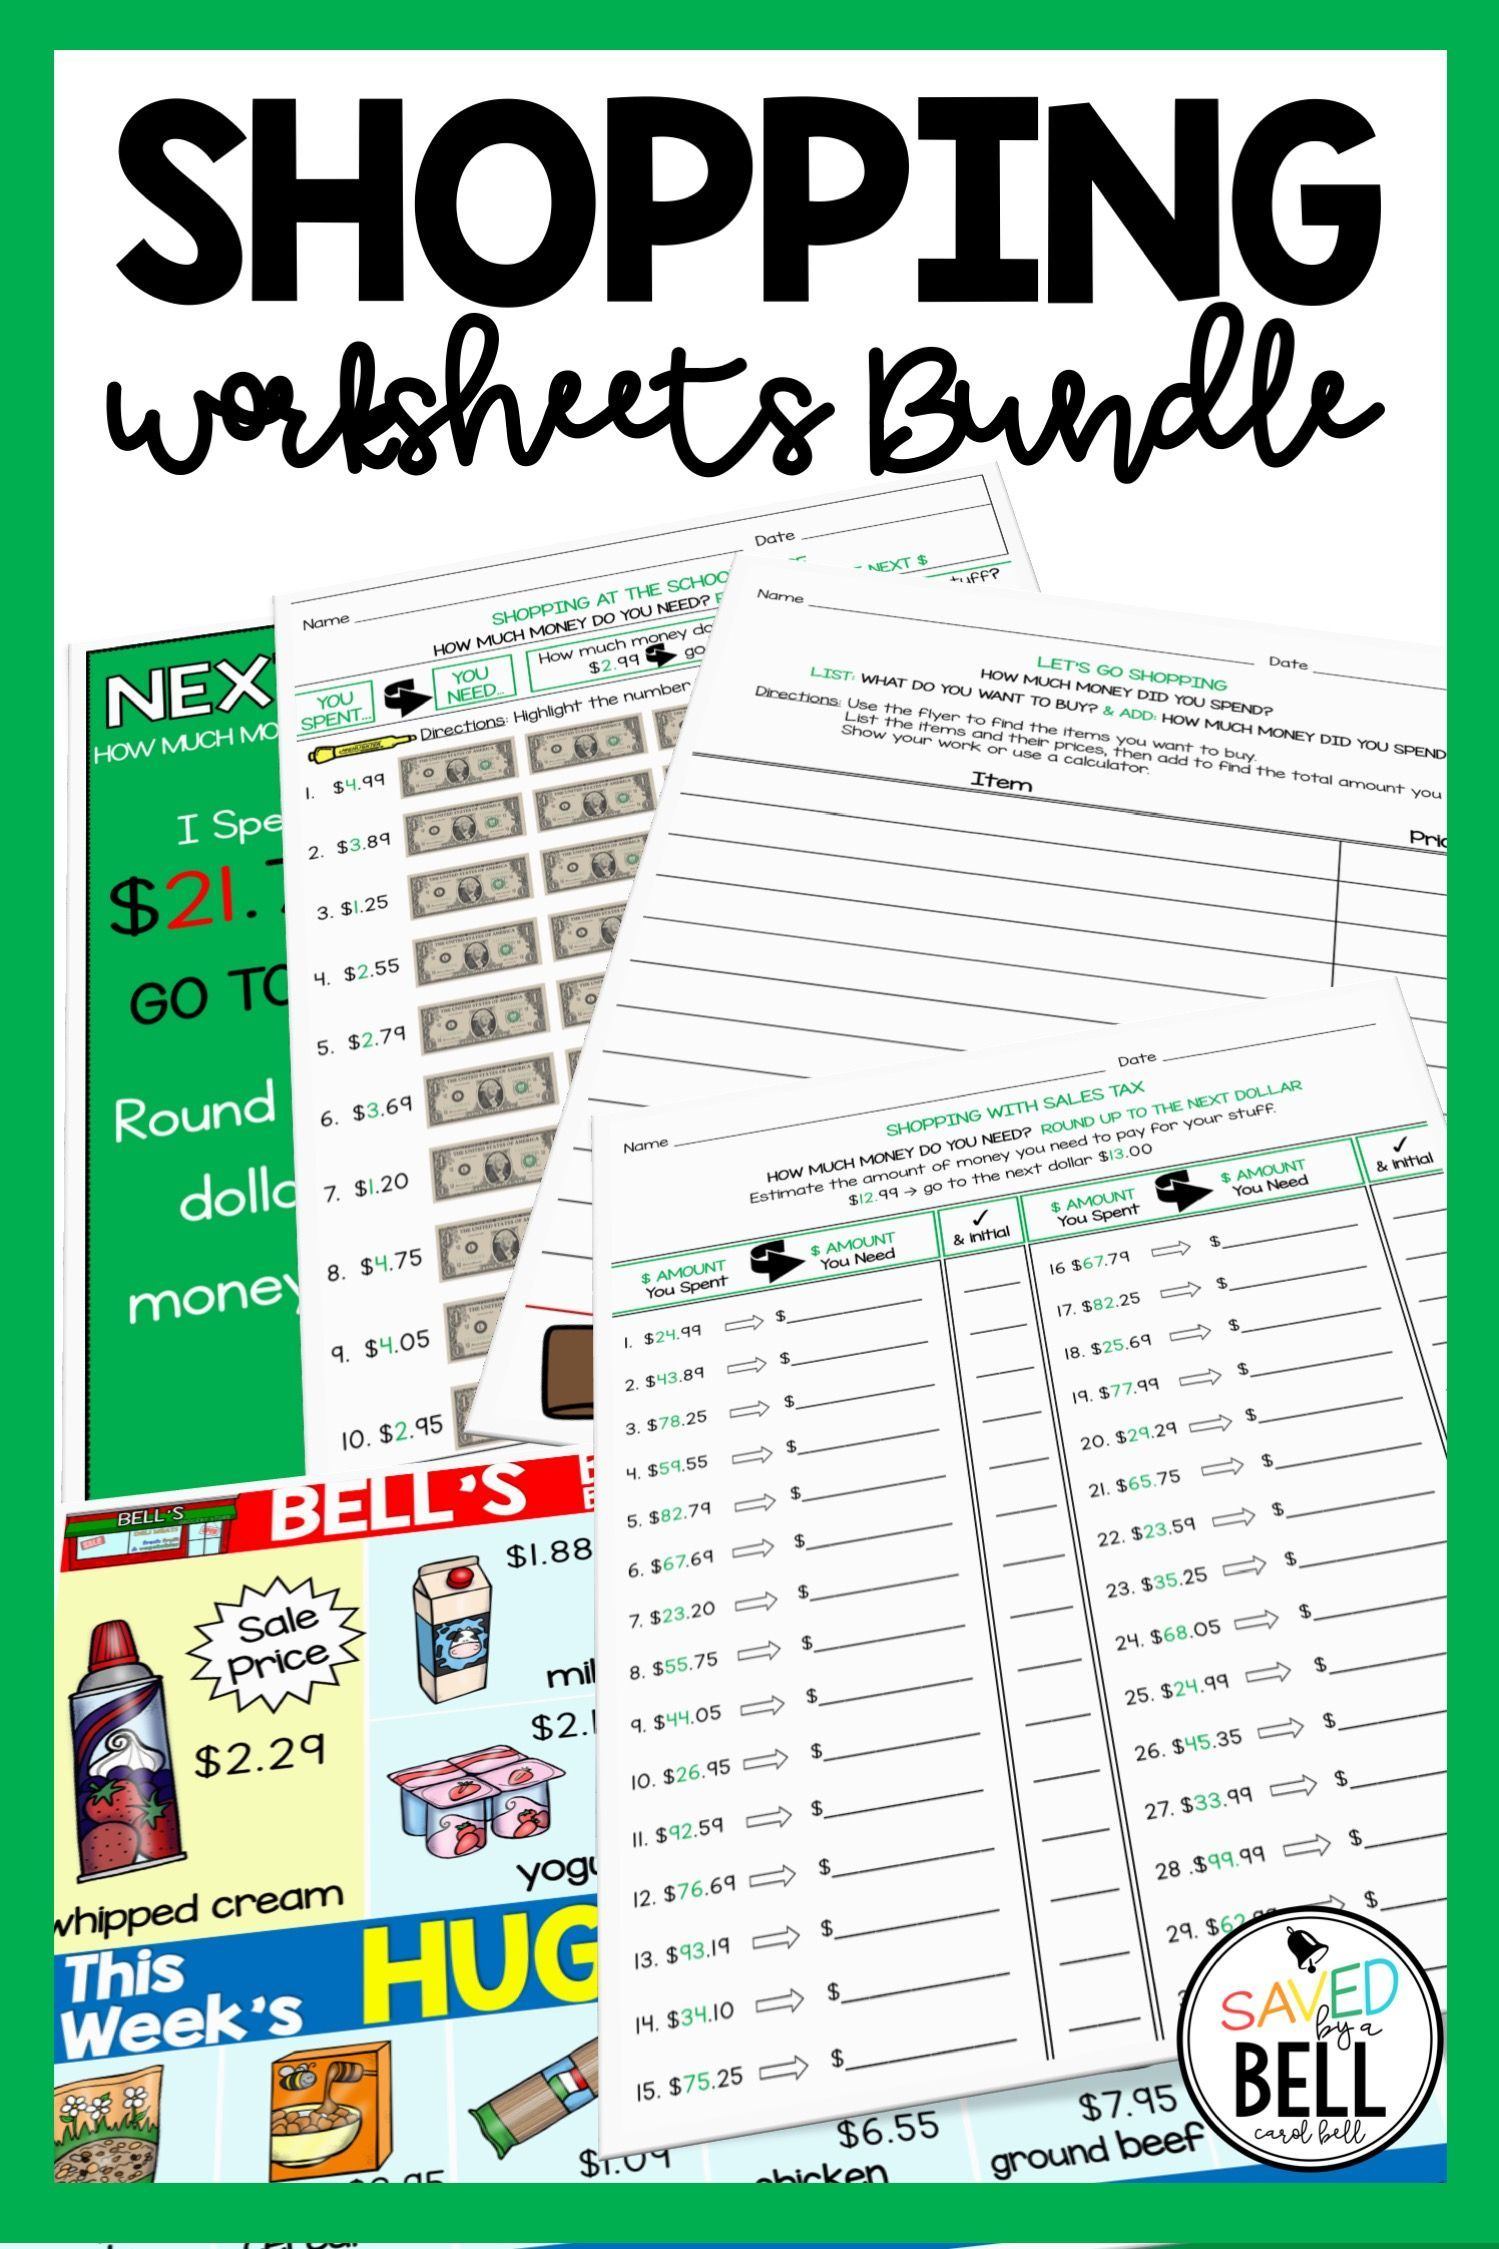 Shopping Worksheets Bundle Addition Subtraction And Next